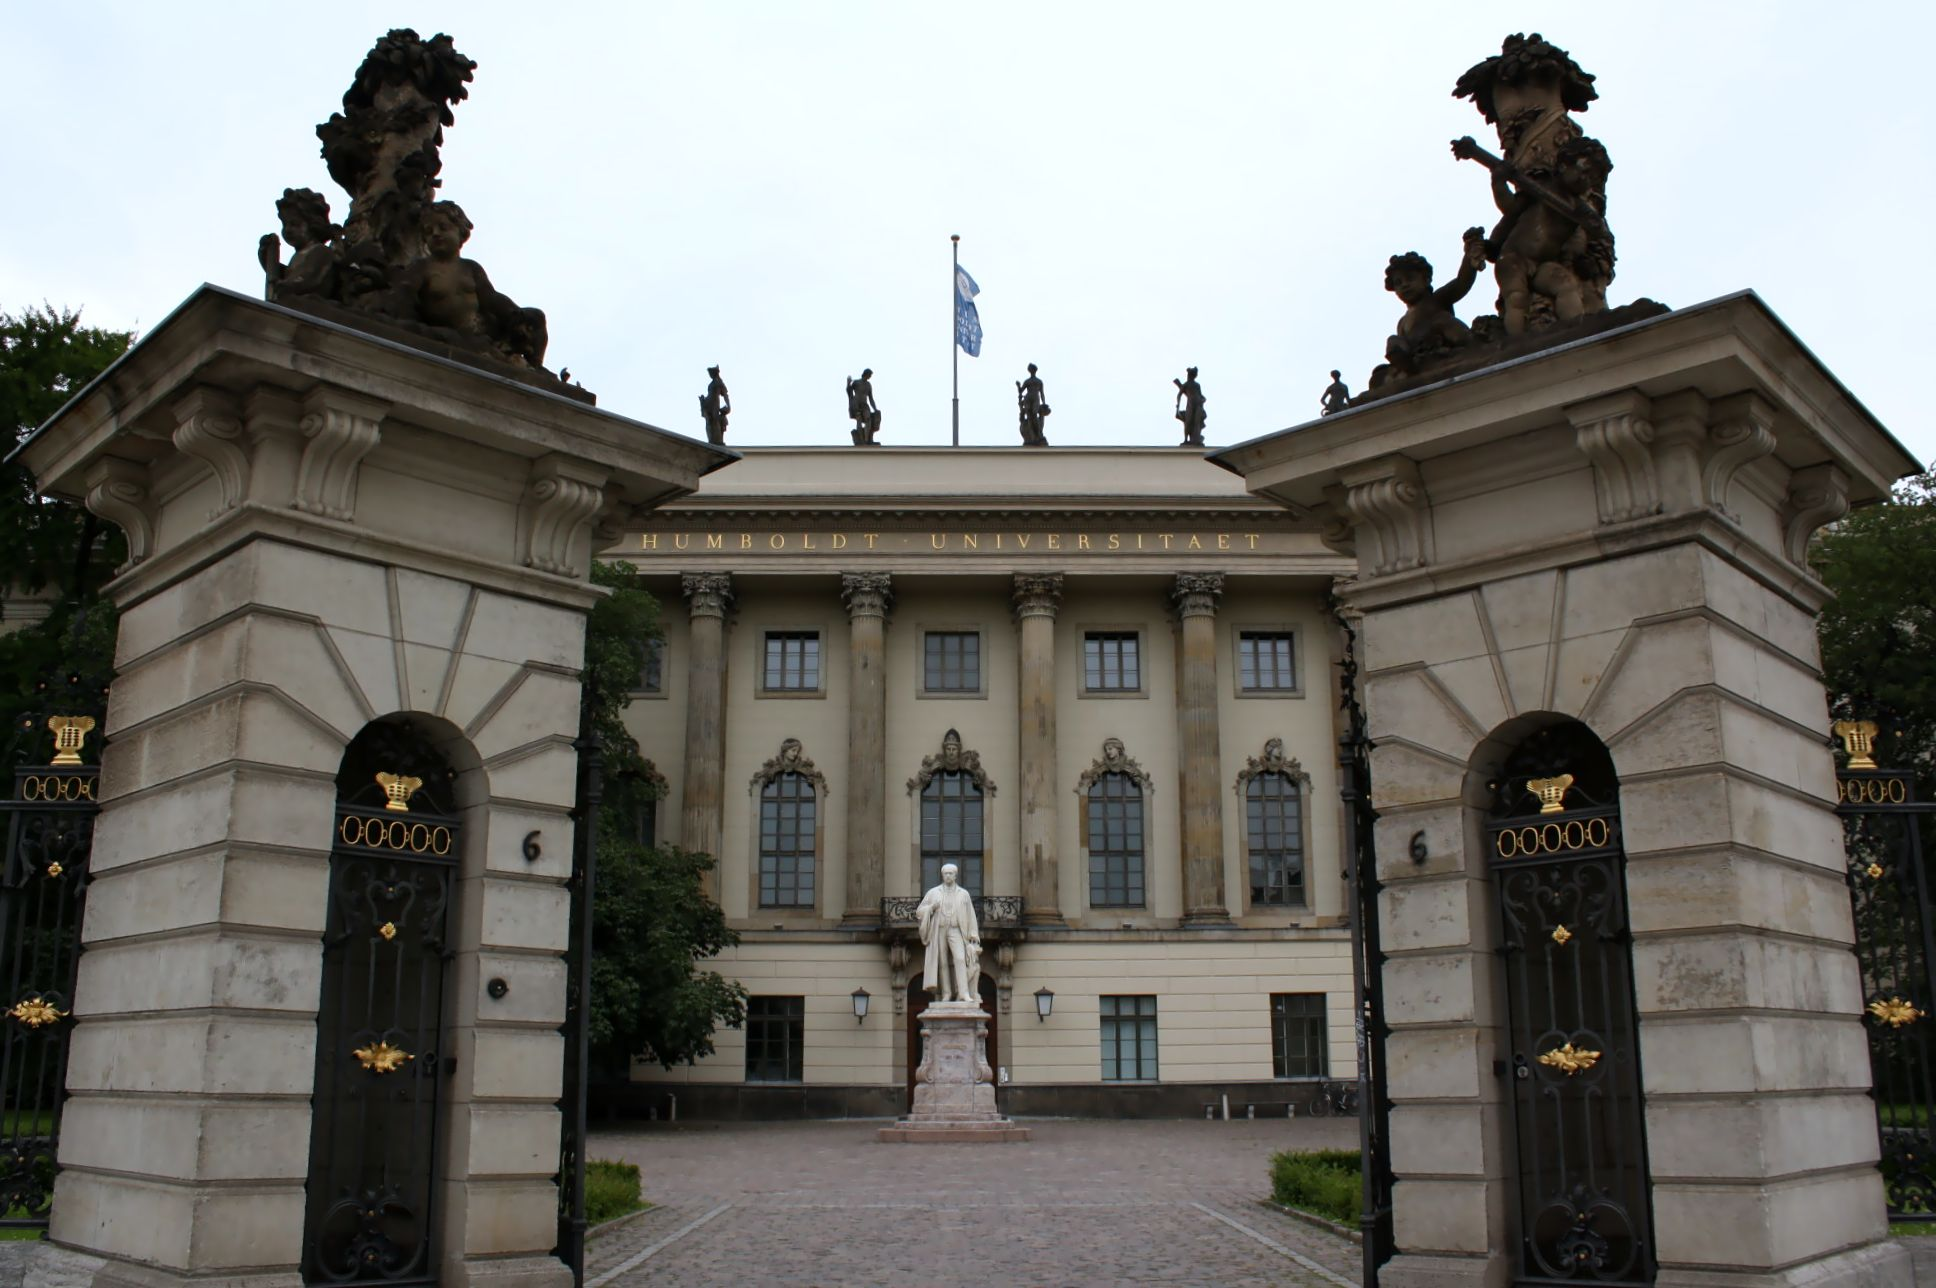 Humboldt University Berlin by unfullfilledlove آلمان